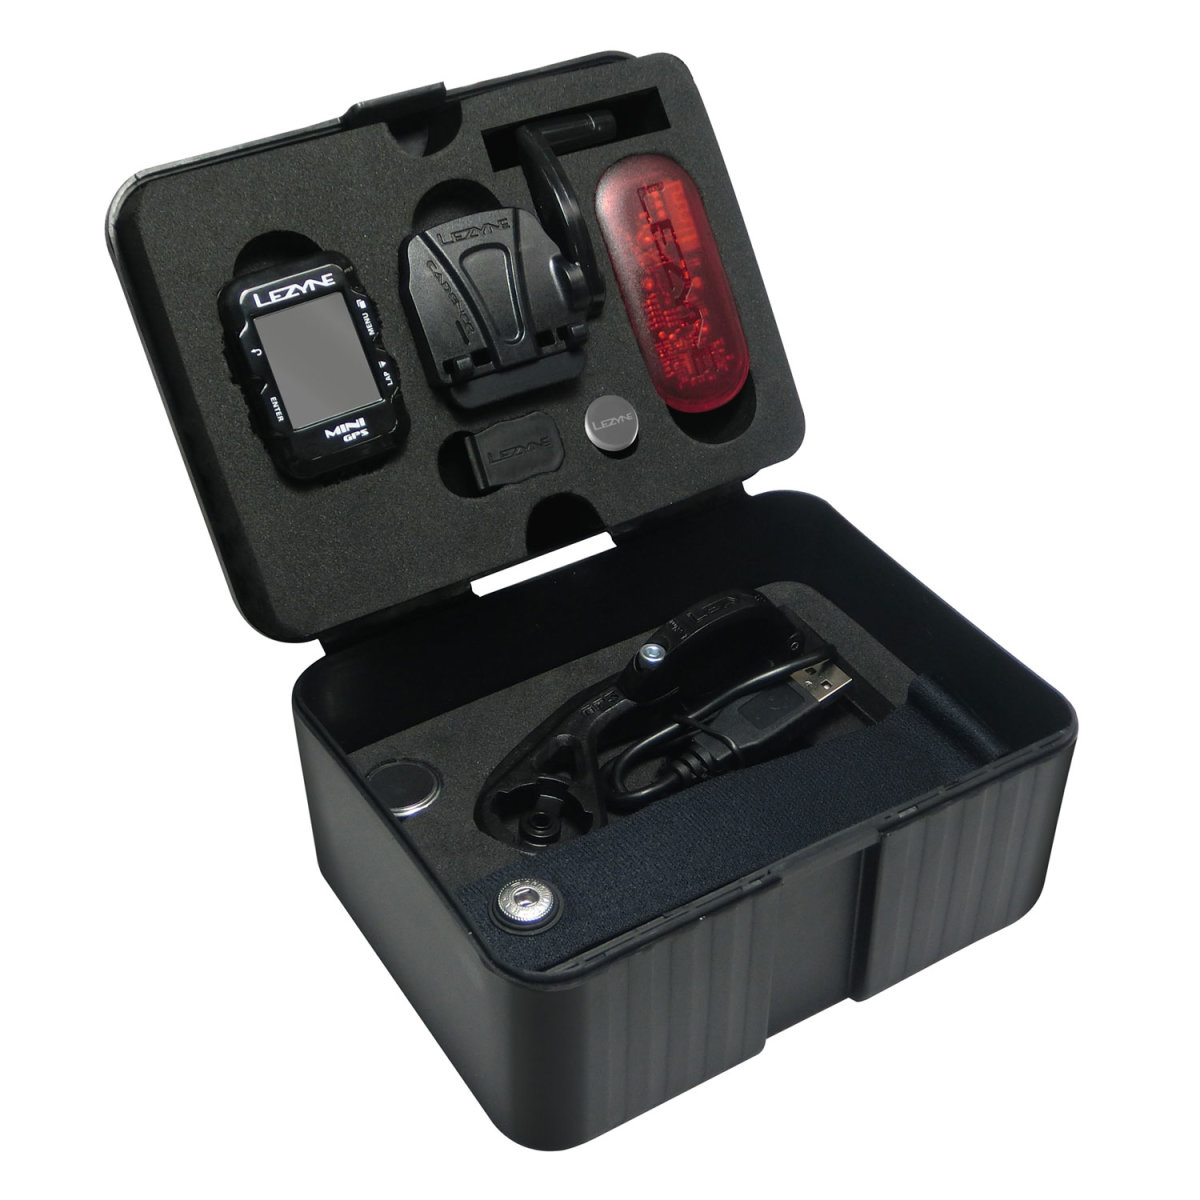 Компьютер Lezyne Mini GPS HR Loaded черный 12 Mini GPS HR Loaded 4712805 987269